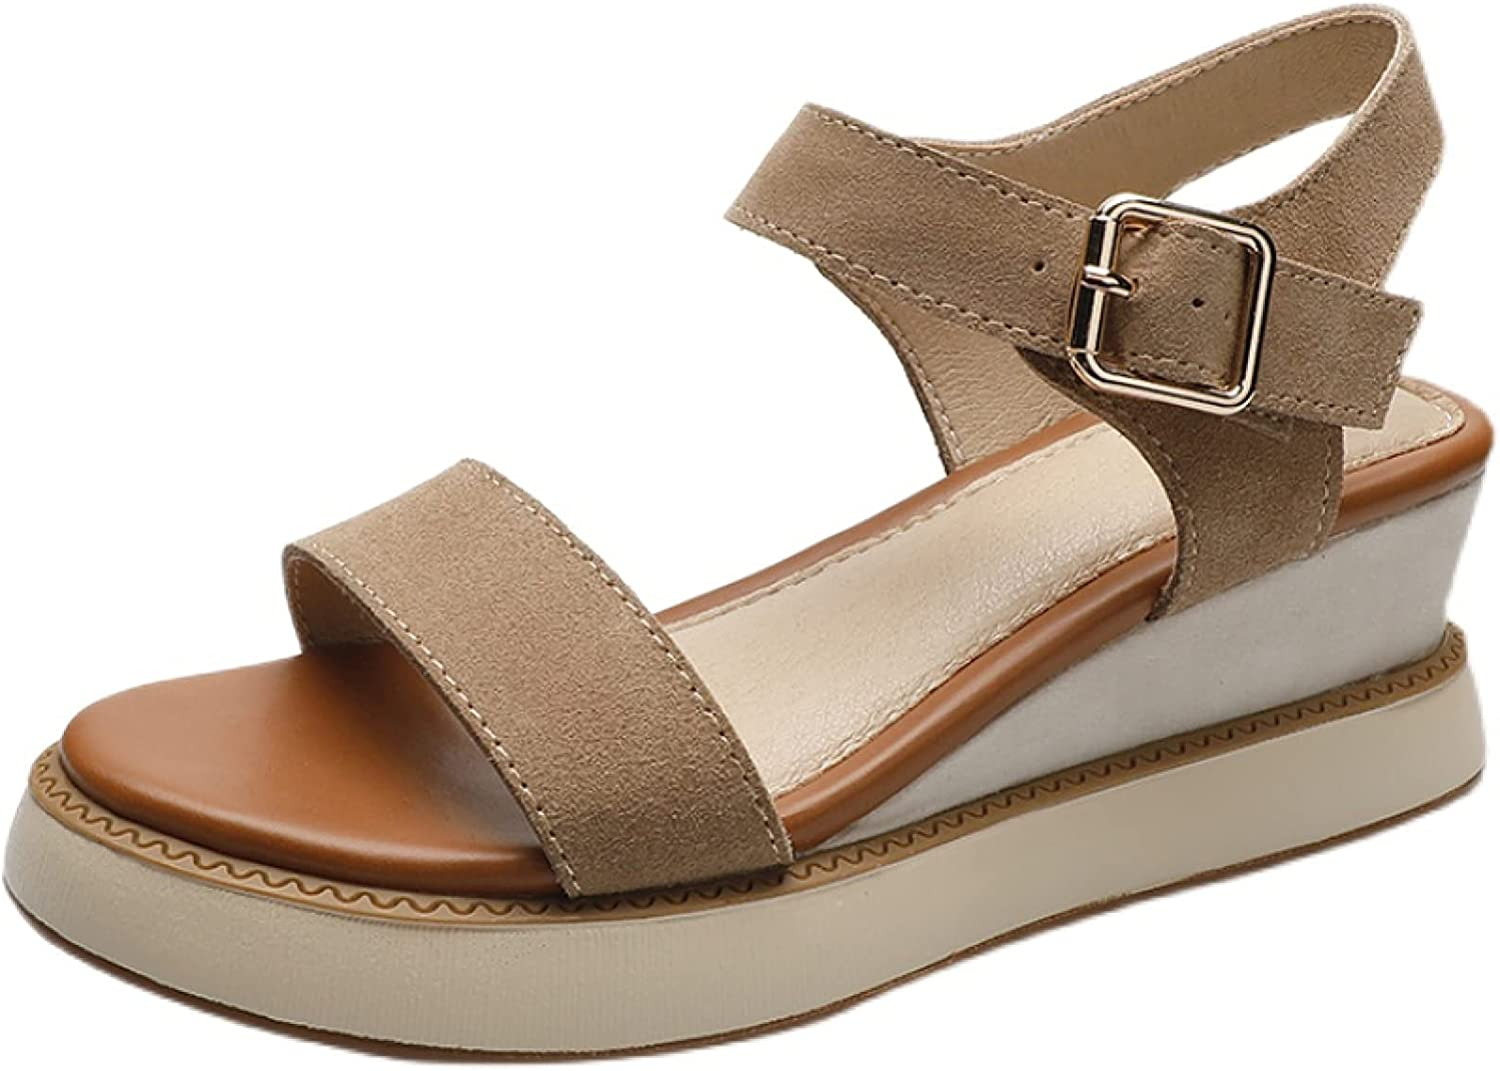 Women's Platform Max 78% OFF Wedge Sandals Matte Directly managed store Fashionable Vamp Microfiber